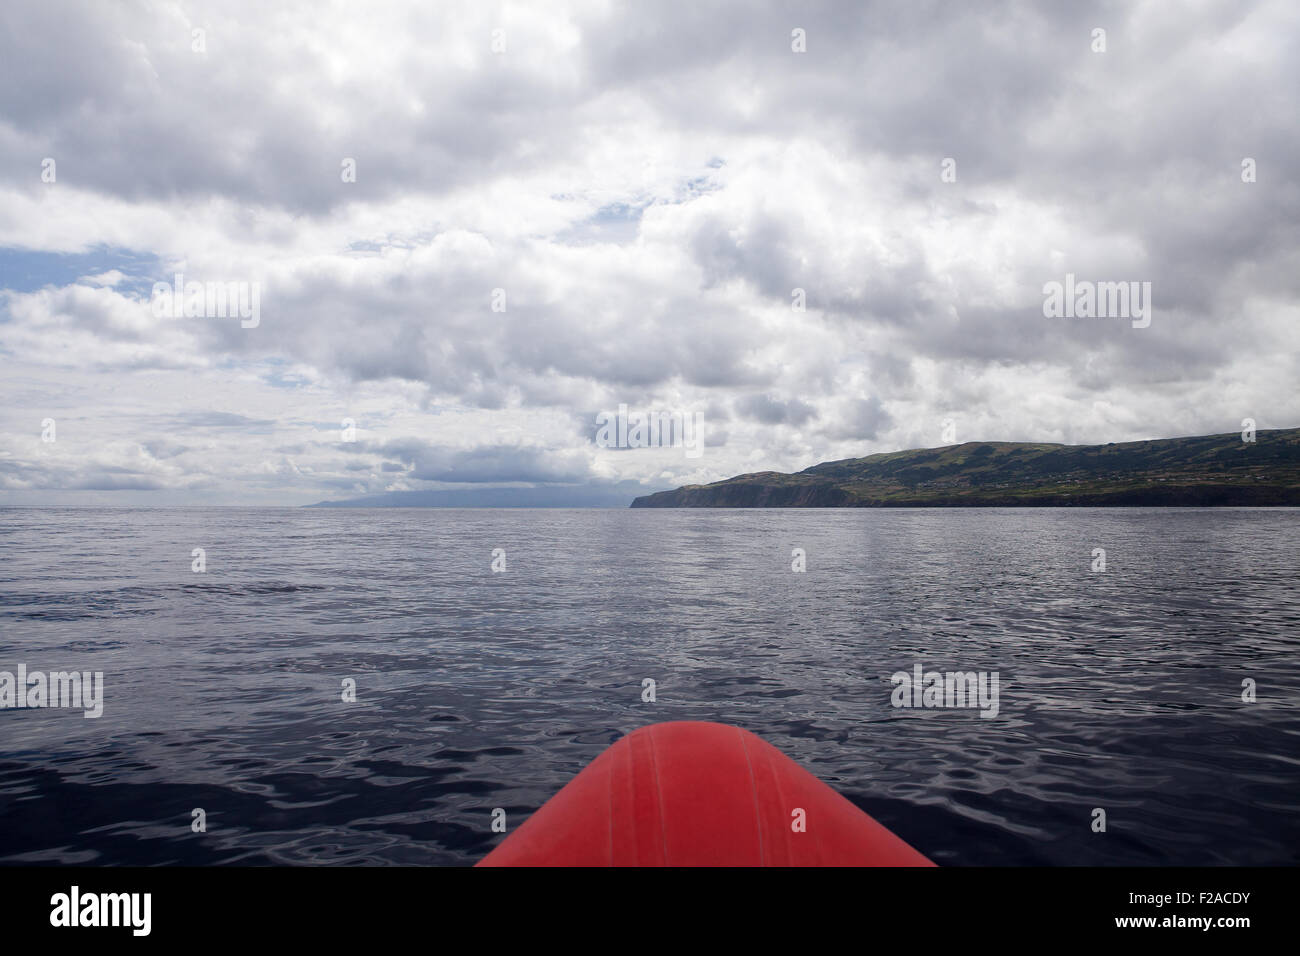 Atlantic Ocean and cloudy sky in Azores - view from sail boat - Stock Image